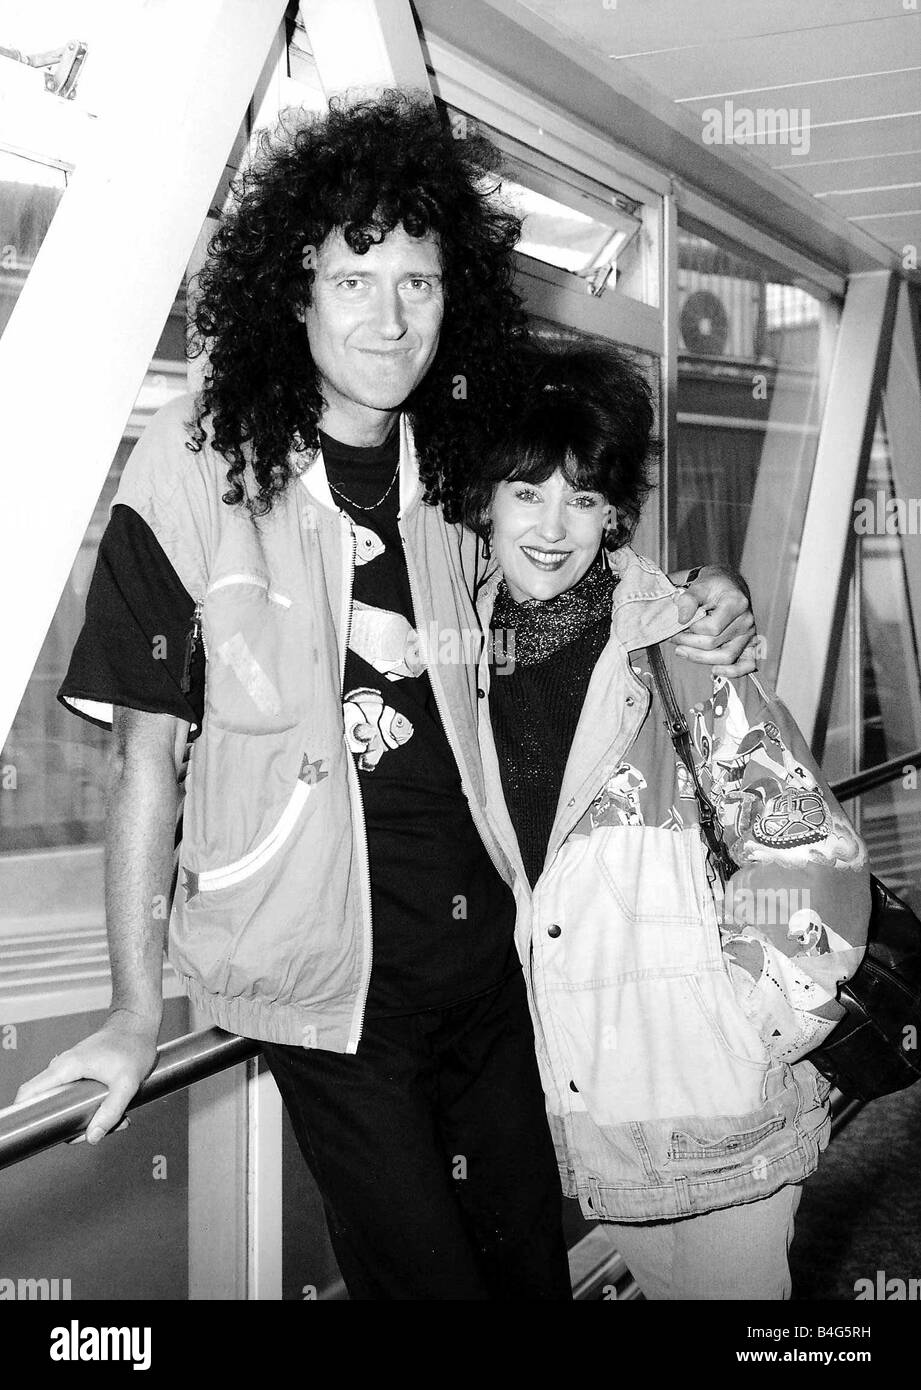 Discussion on this topic: Jacqueline Obradors, anita-dobson/